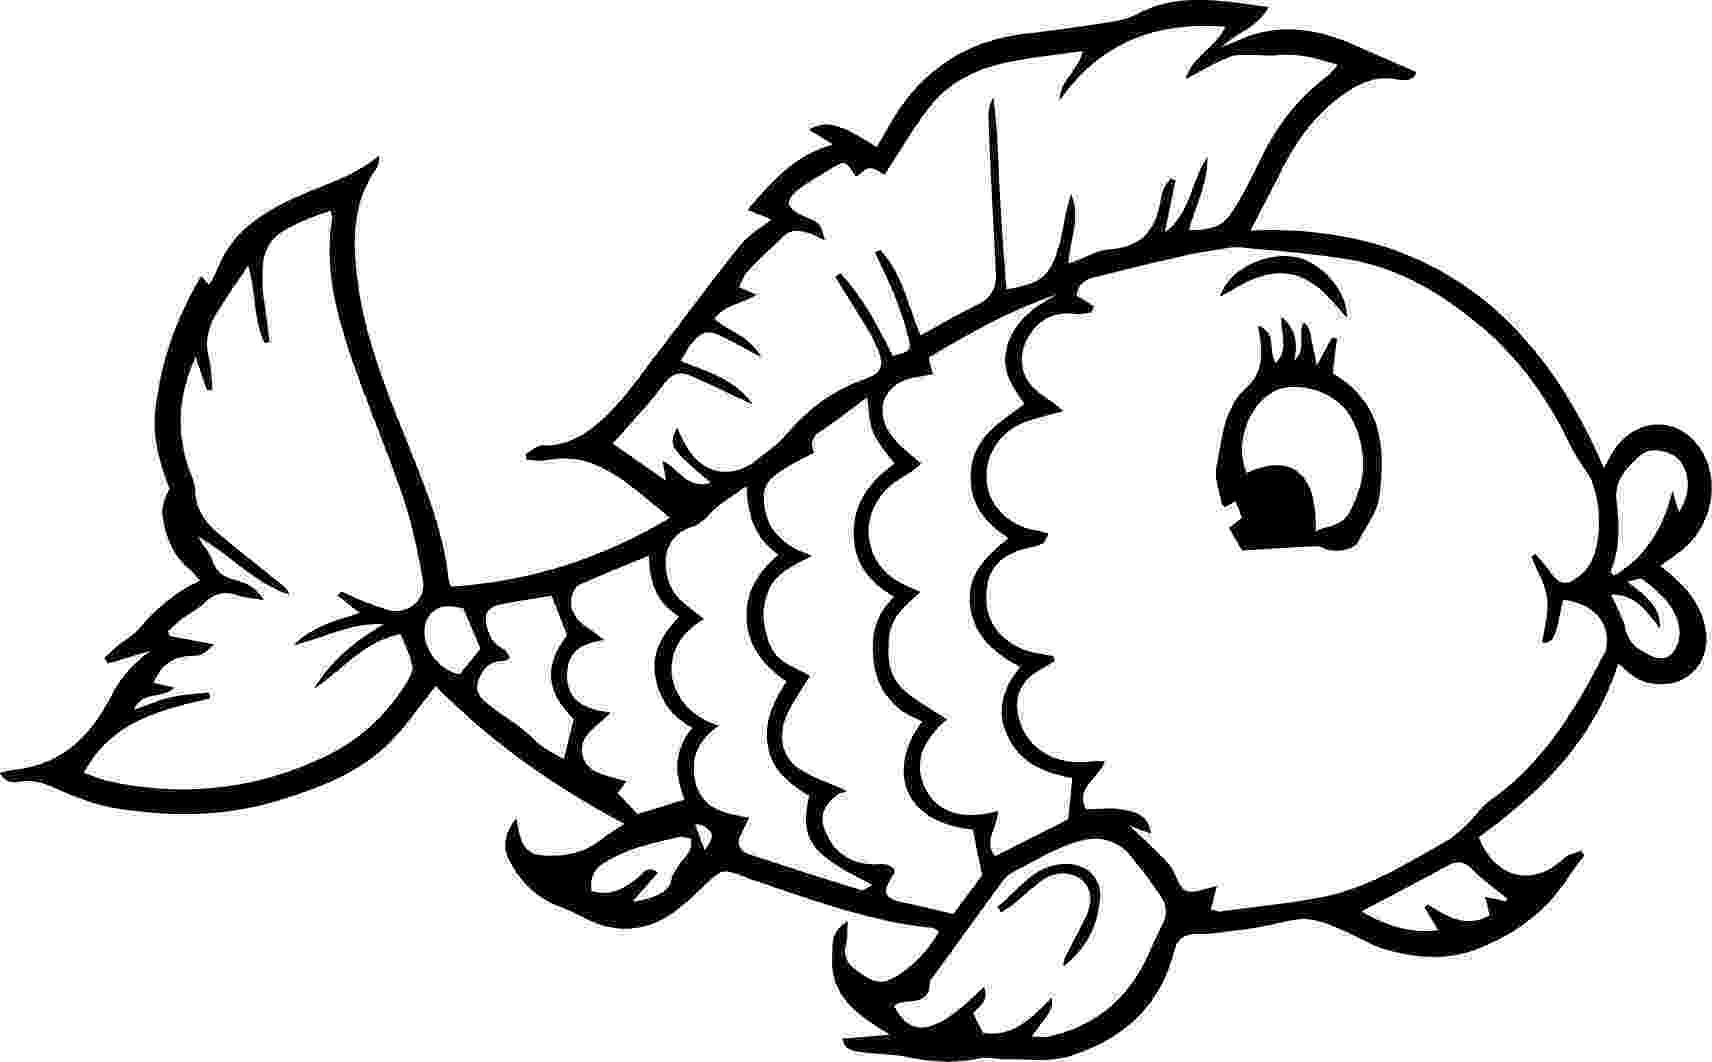 goldfish coloring page fish drawing images at getdrawingscom free for personal coloring page goldfish